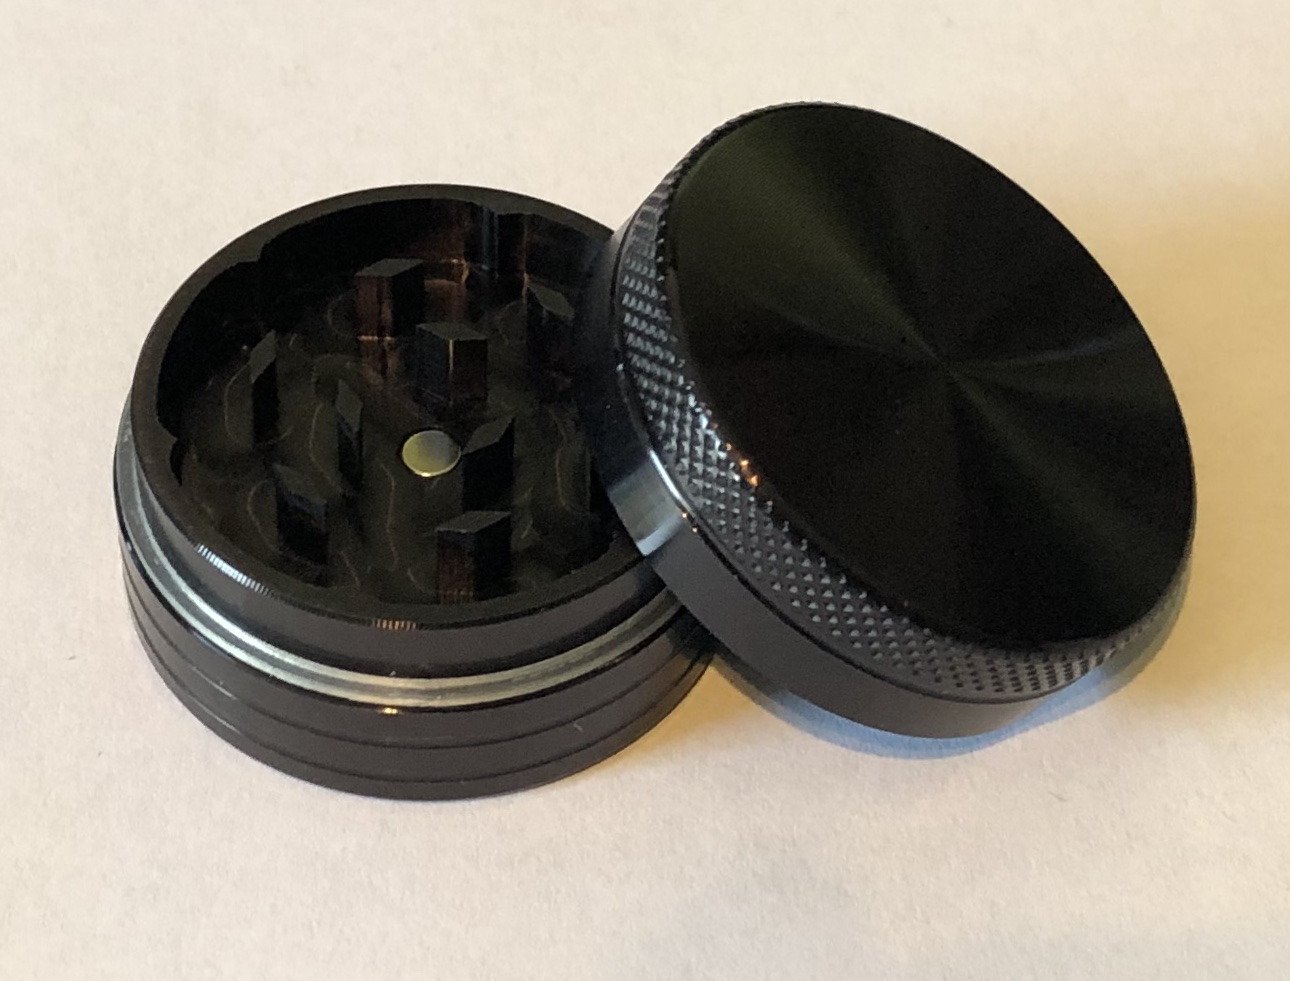 SPF Grinder 40mm 2 Part - Black